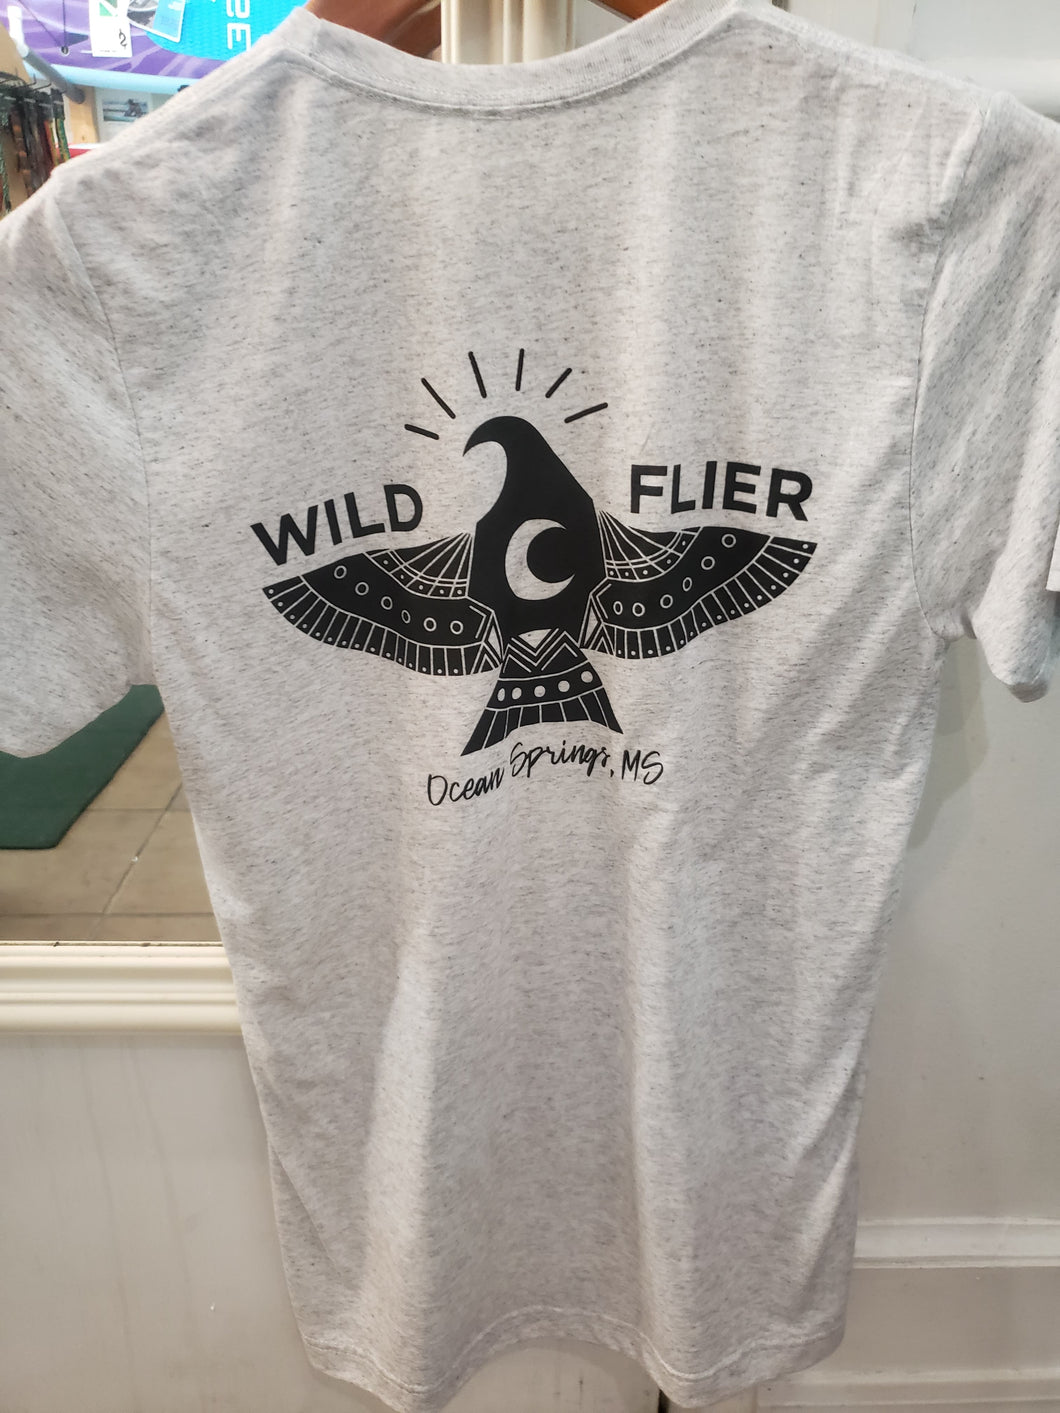 Wild Flier Men's T-Shirt - Paddles Up Paddleboards